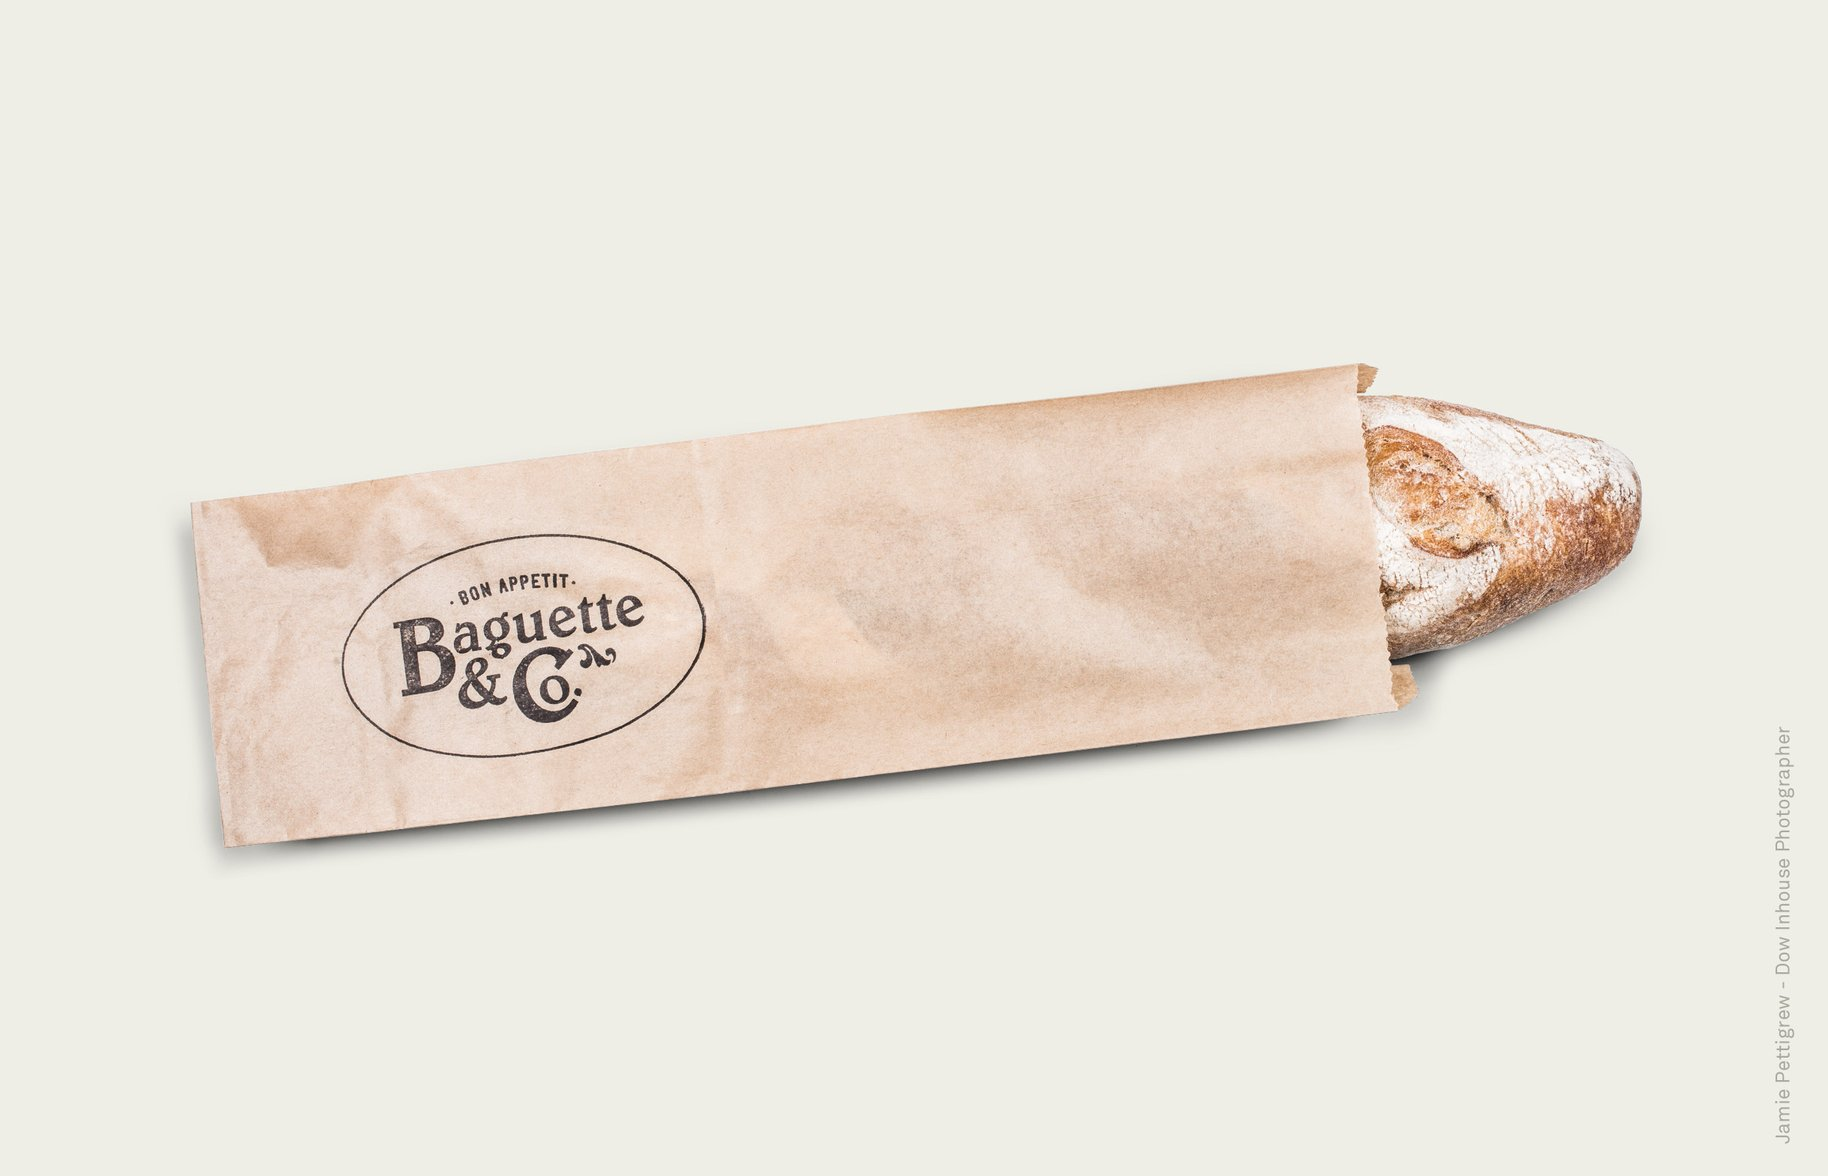 Baguette & Co logo on paper baguette bag